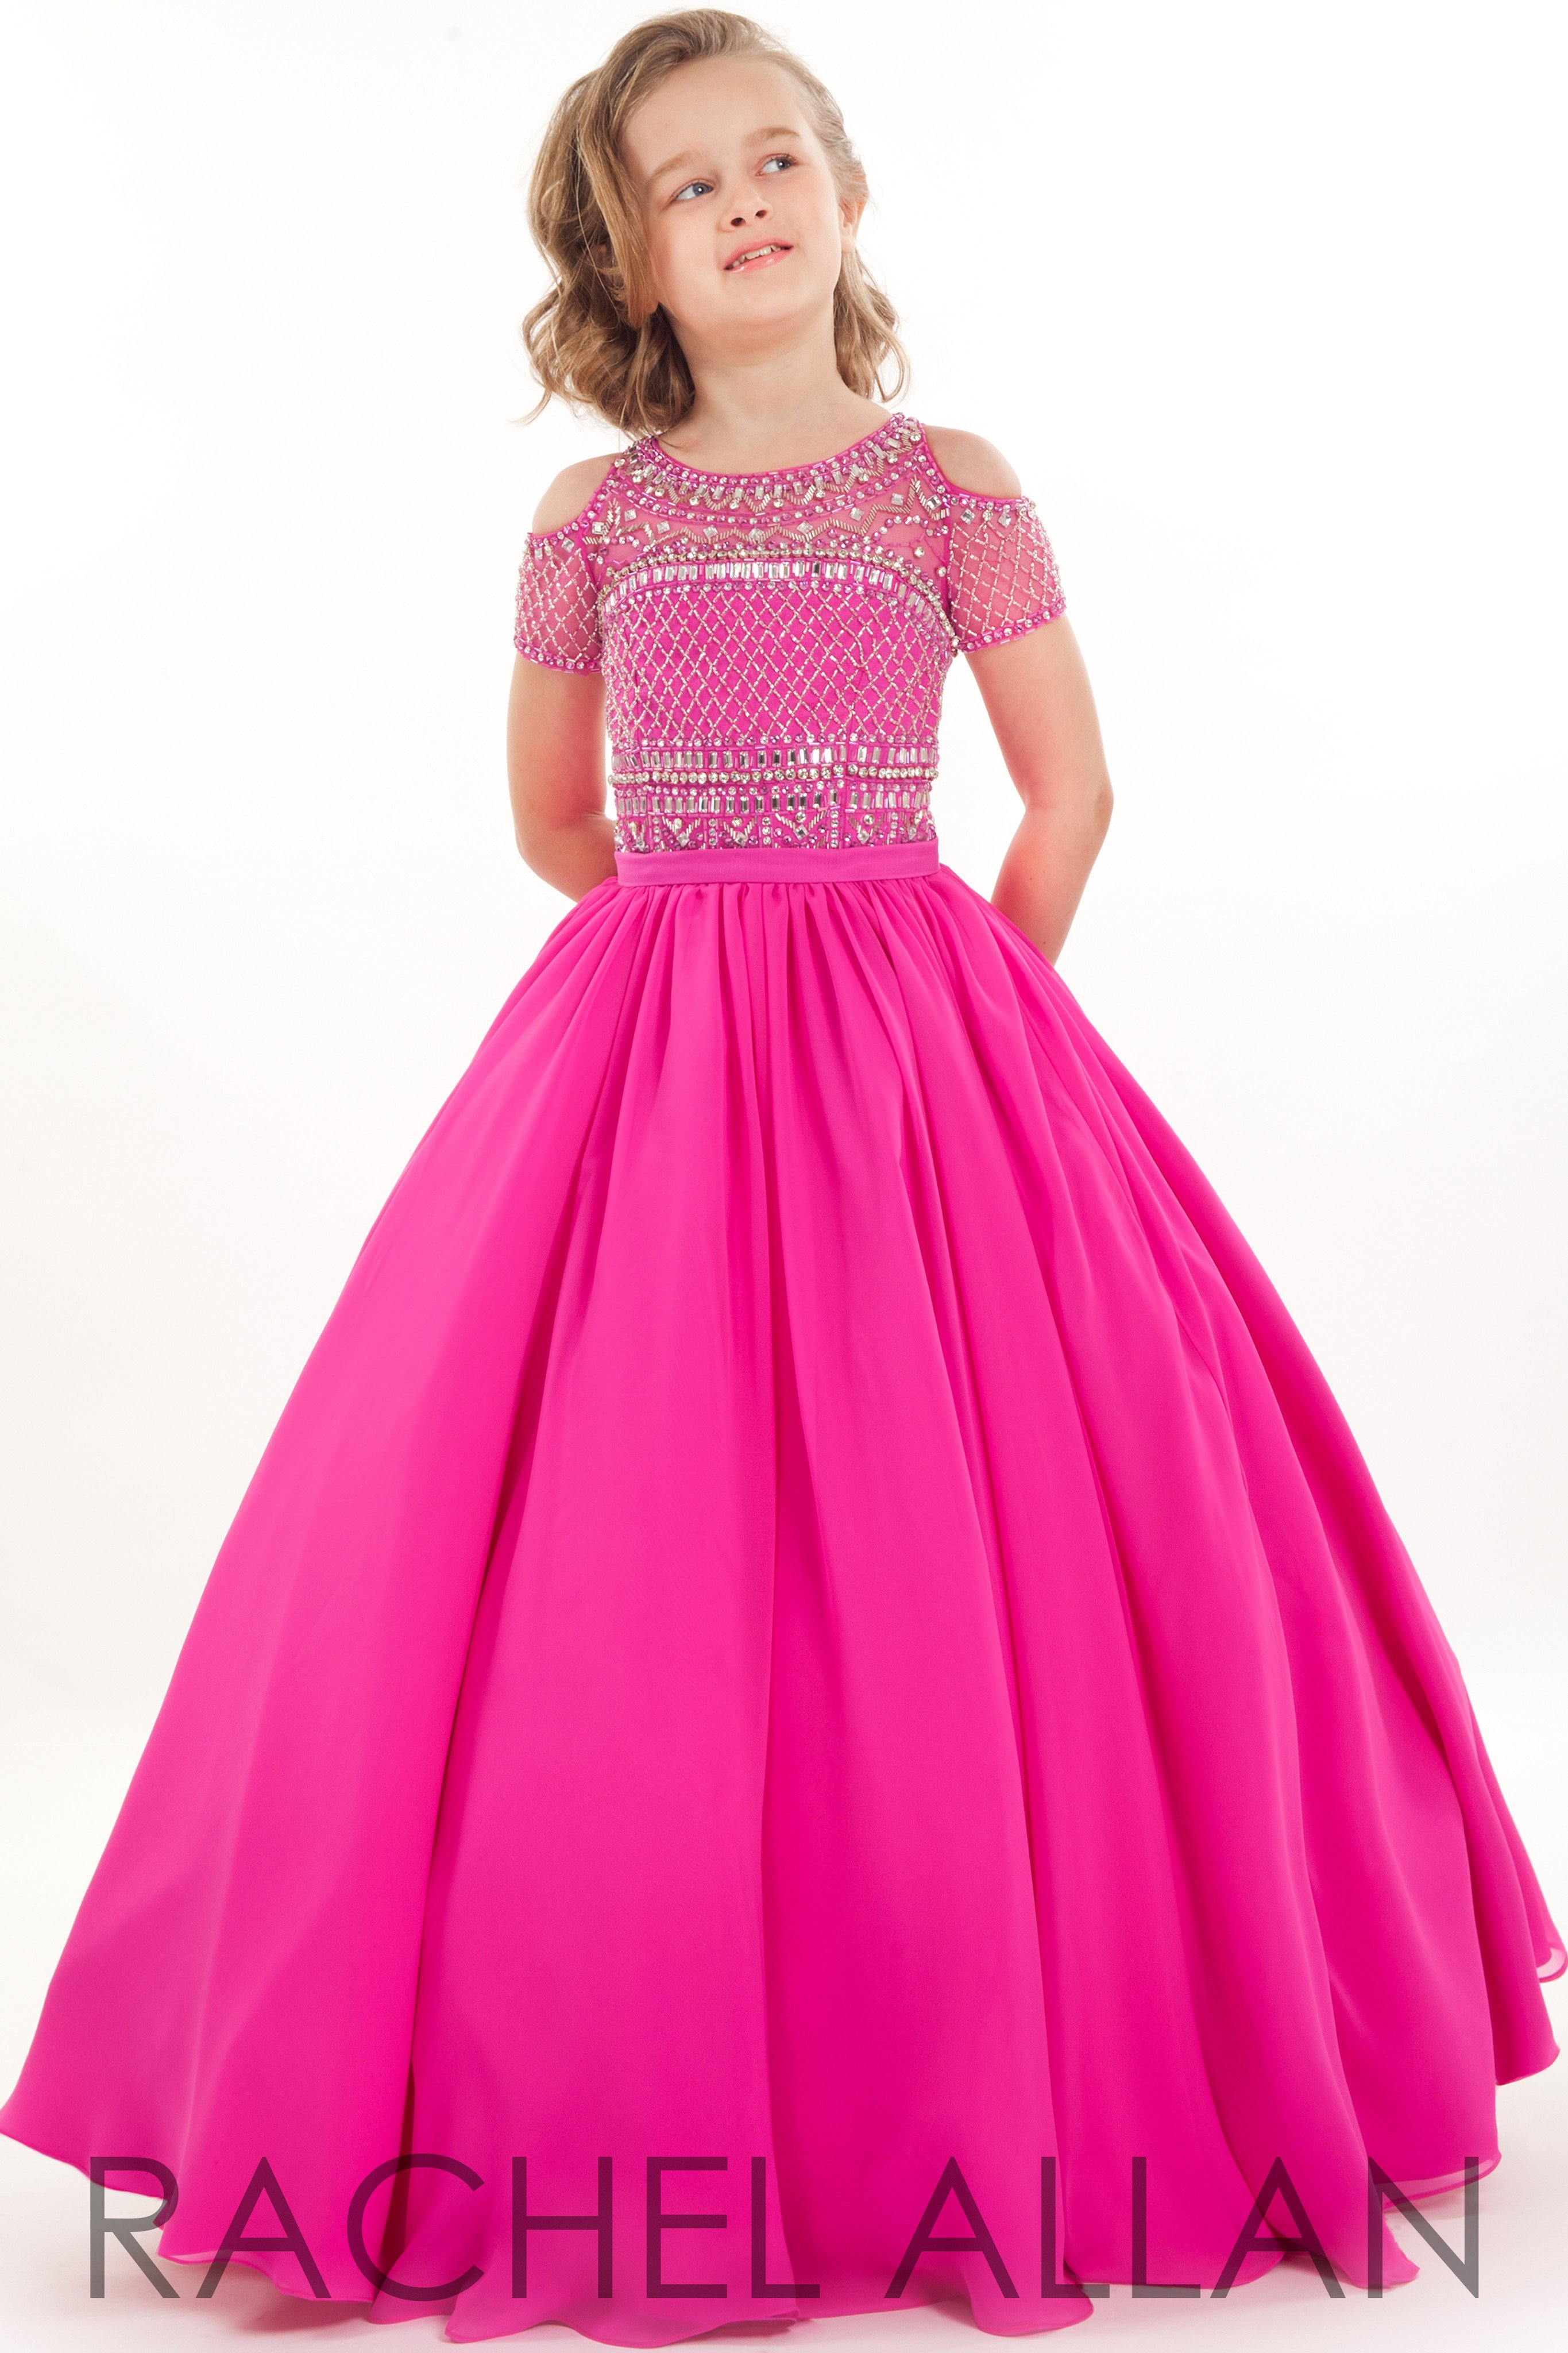 Perfect Angels 1683 Hot Pink Girls Pageant Dress